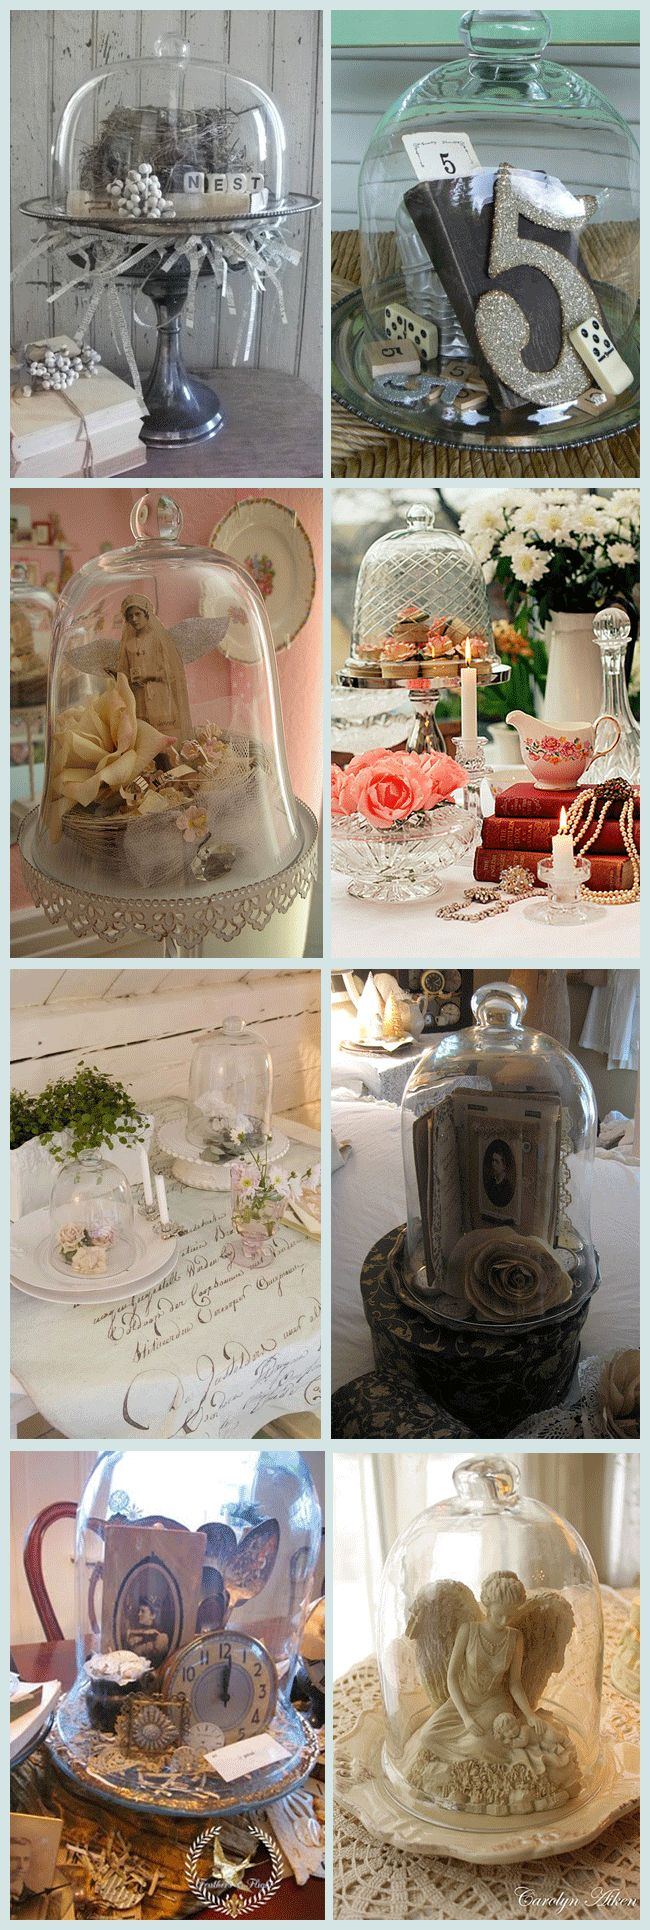 images of french country cottage decoration | ... Display Silvertone Tray French Country Cottage Decor Cake on Pinterest